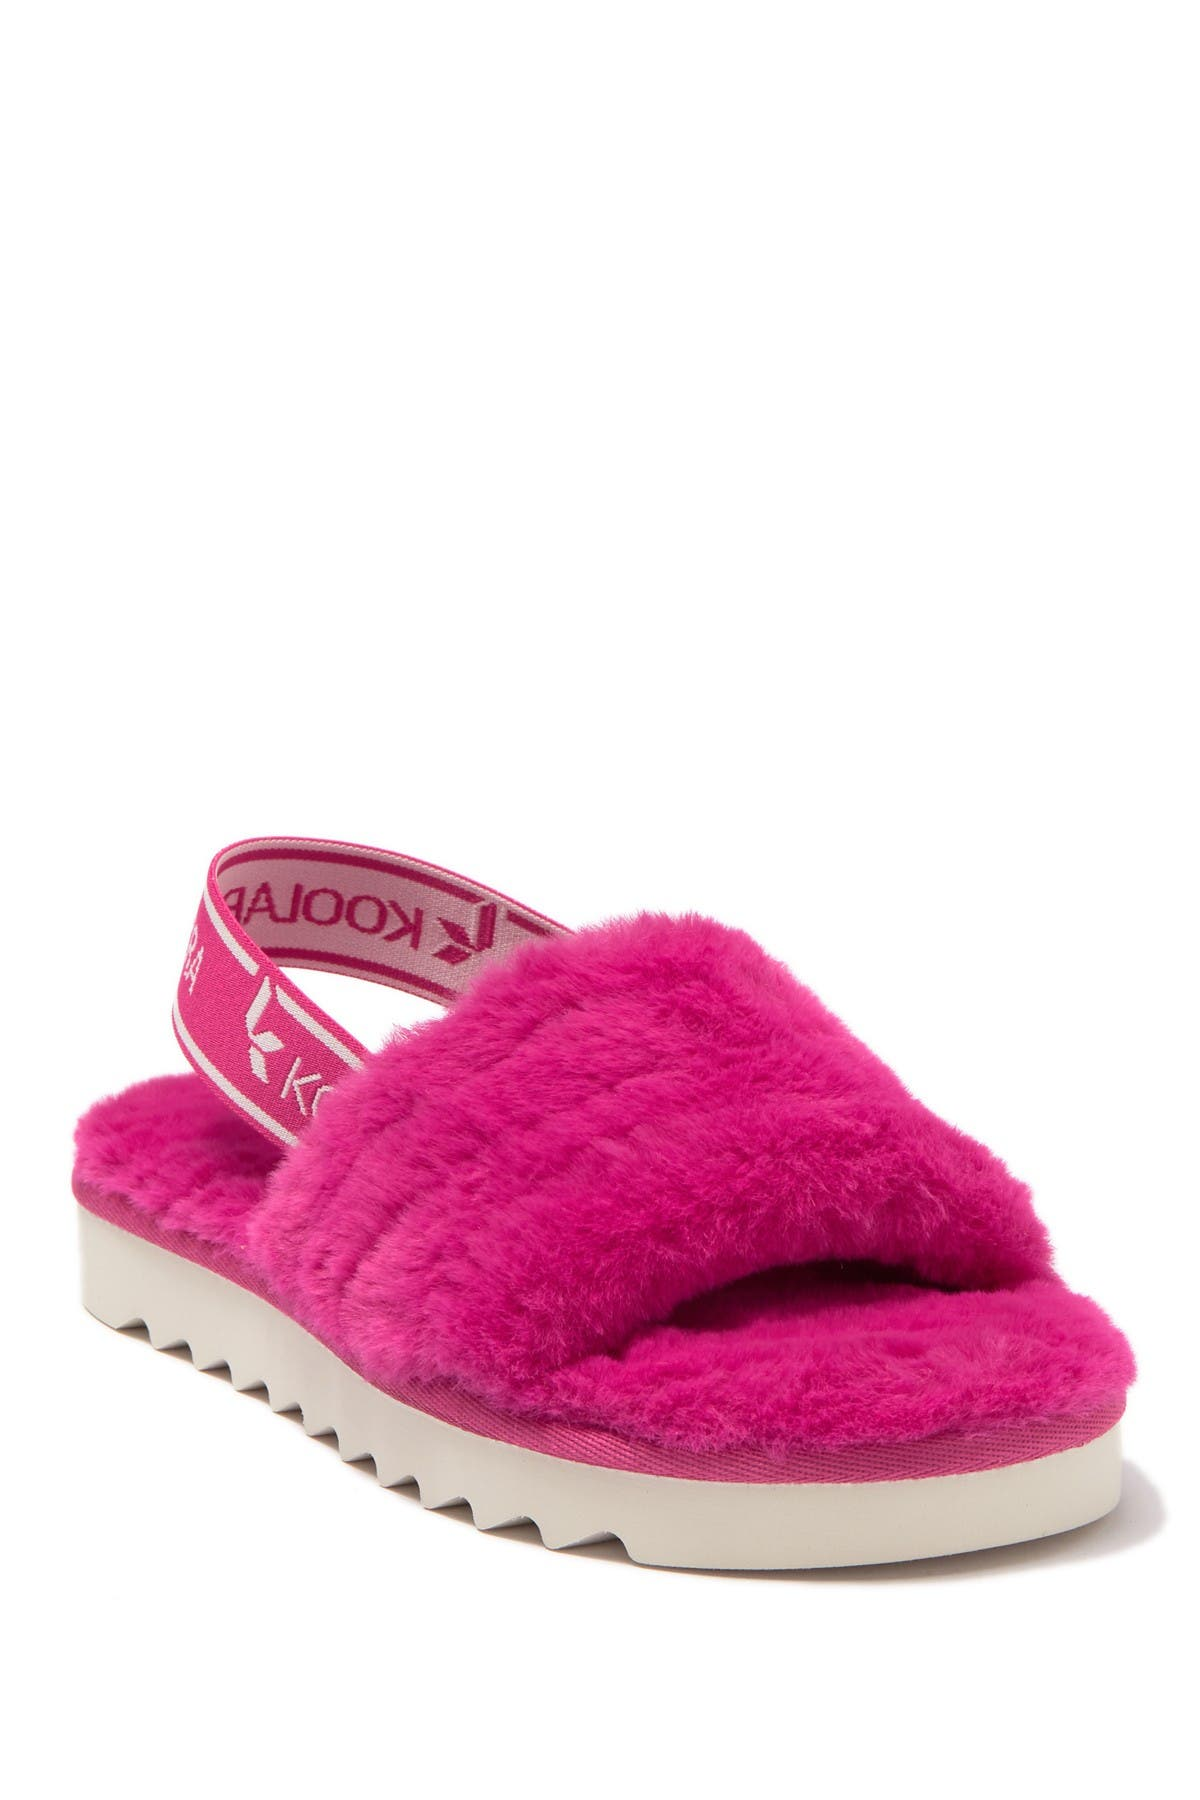 Image of KOOLABURRA BY UGG Fuzz'n Faux Fur Slipper Sandal